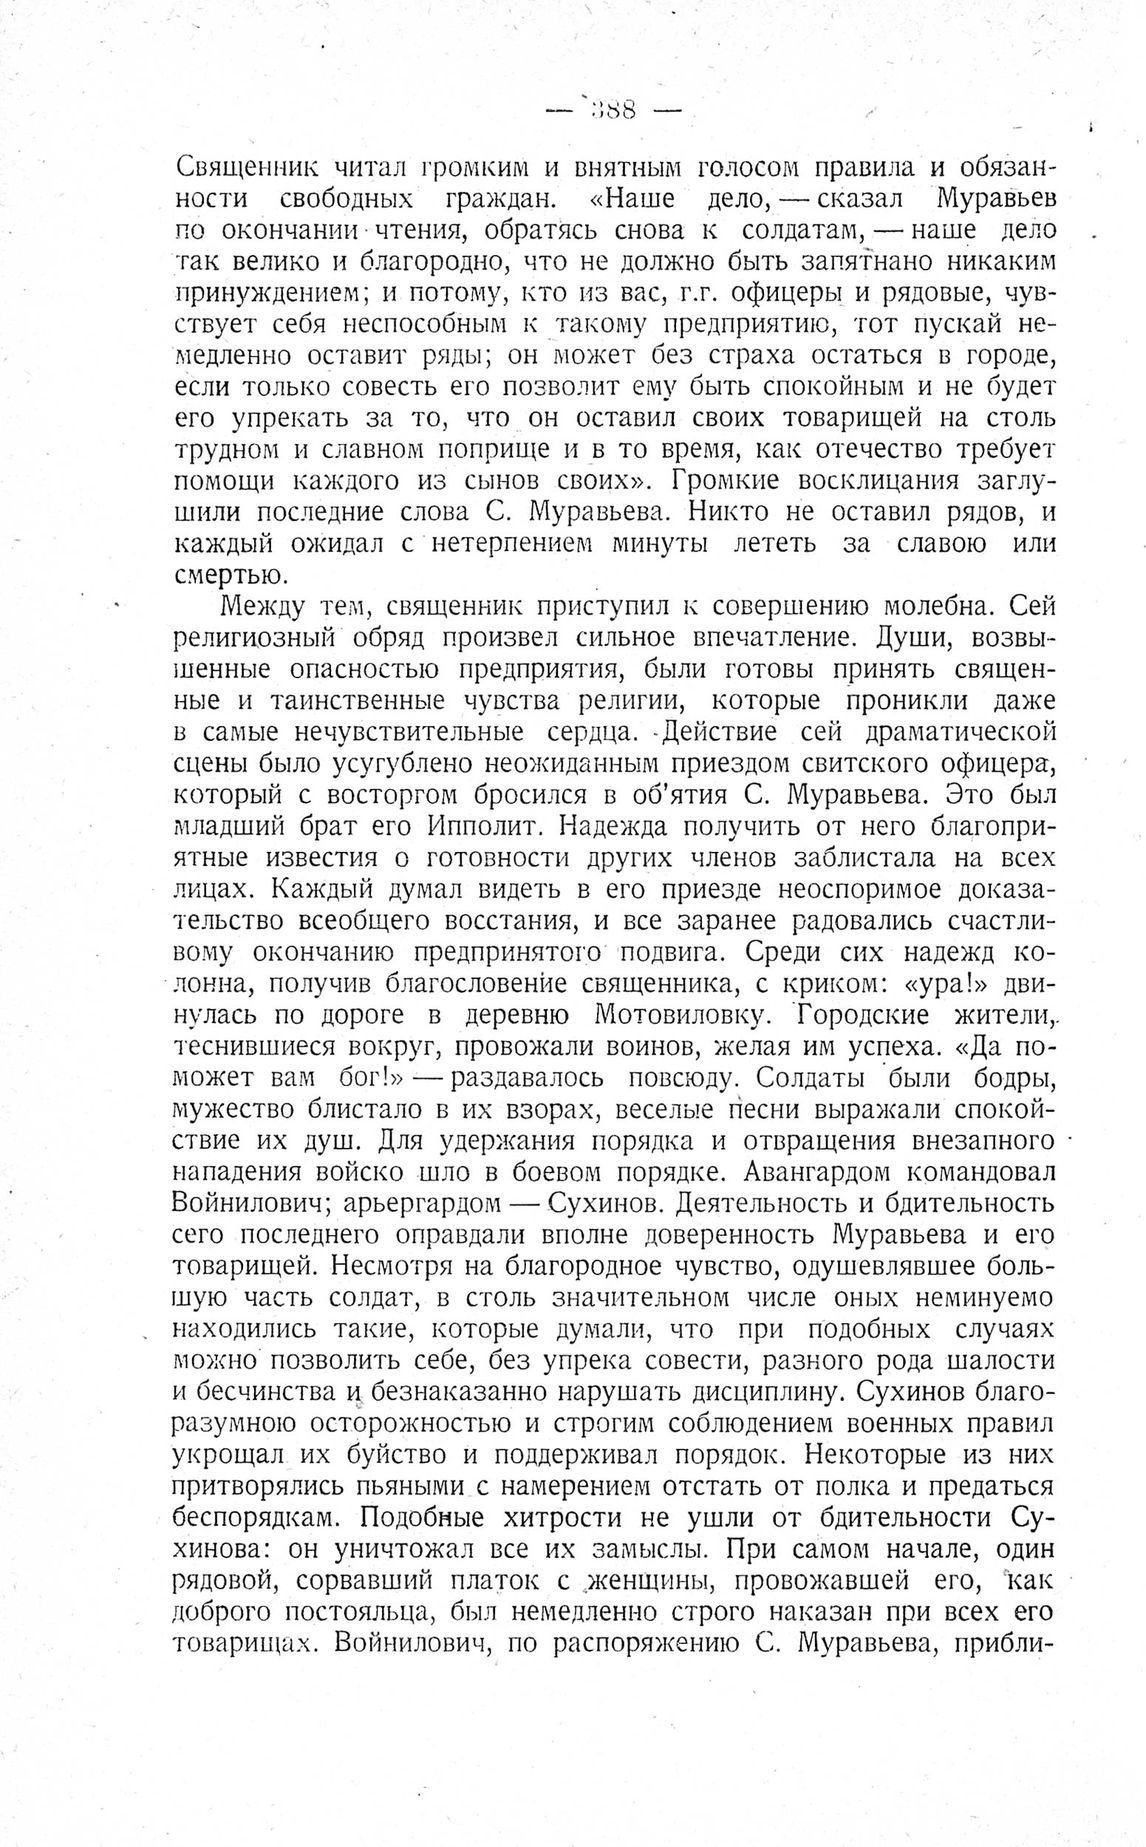 http://elib.shpl.ru/pages/625971/zooms/7